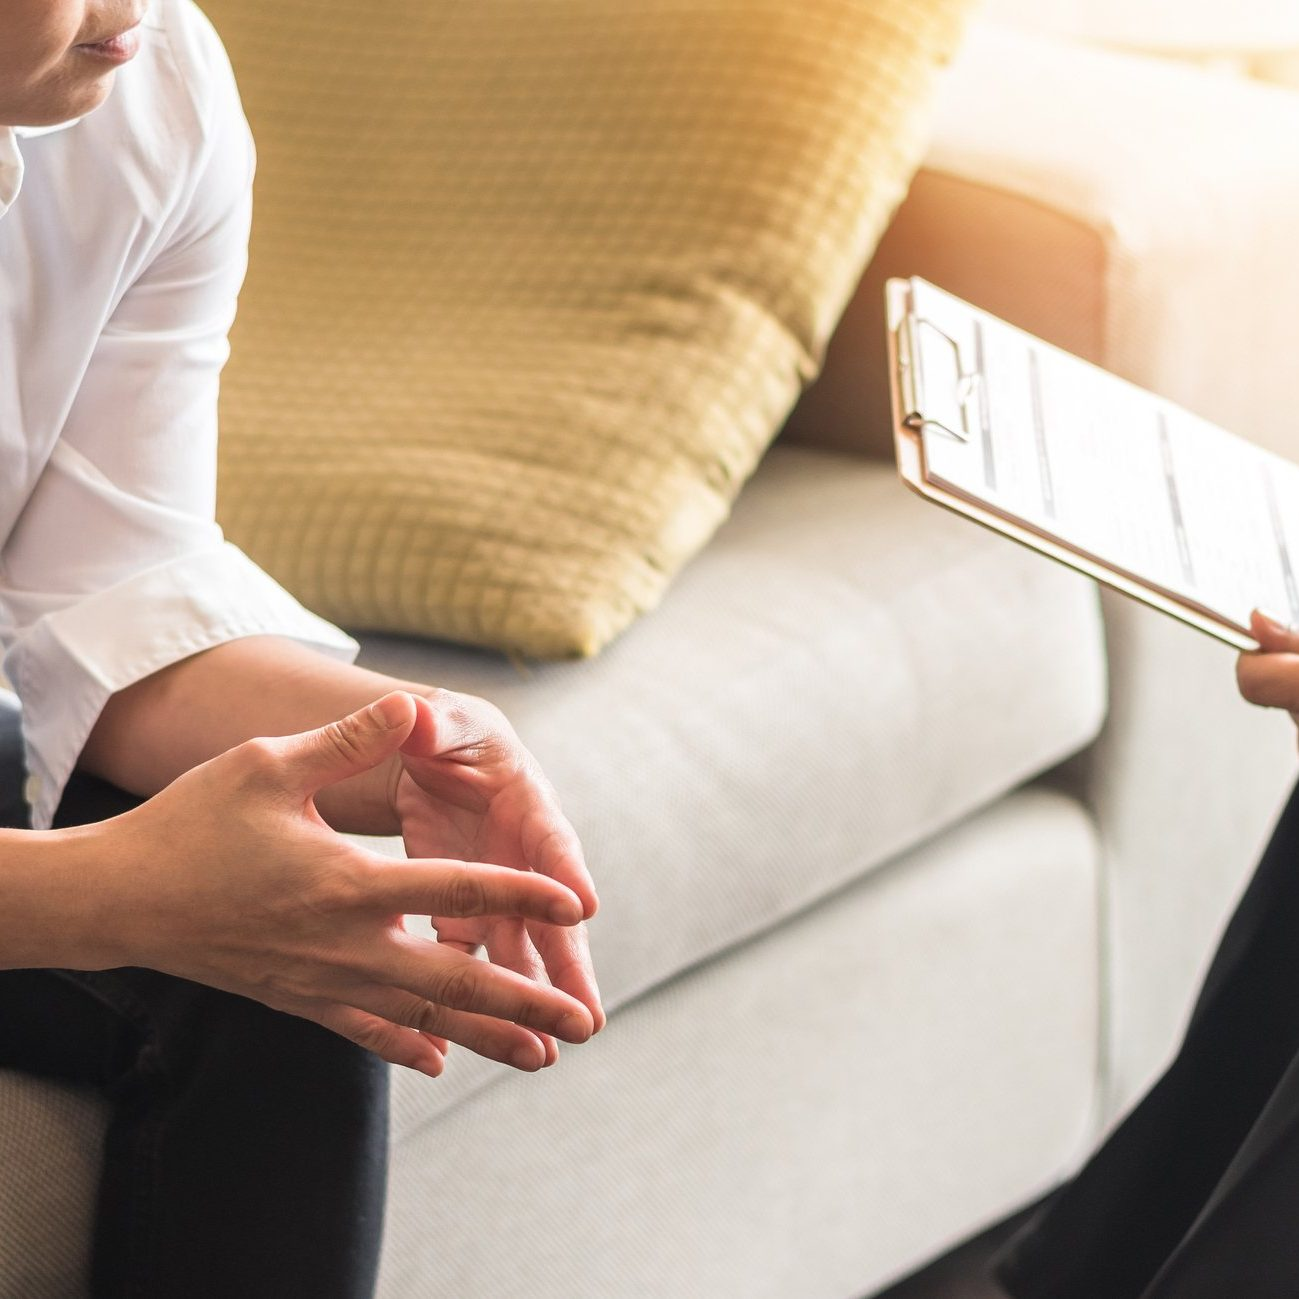 Doctor or psychiatrist consulting and diagnostic examining stressful woman patient on obstetric - gynecological female illness, or mental health in medical clinic or hospital healthcare service center